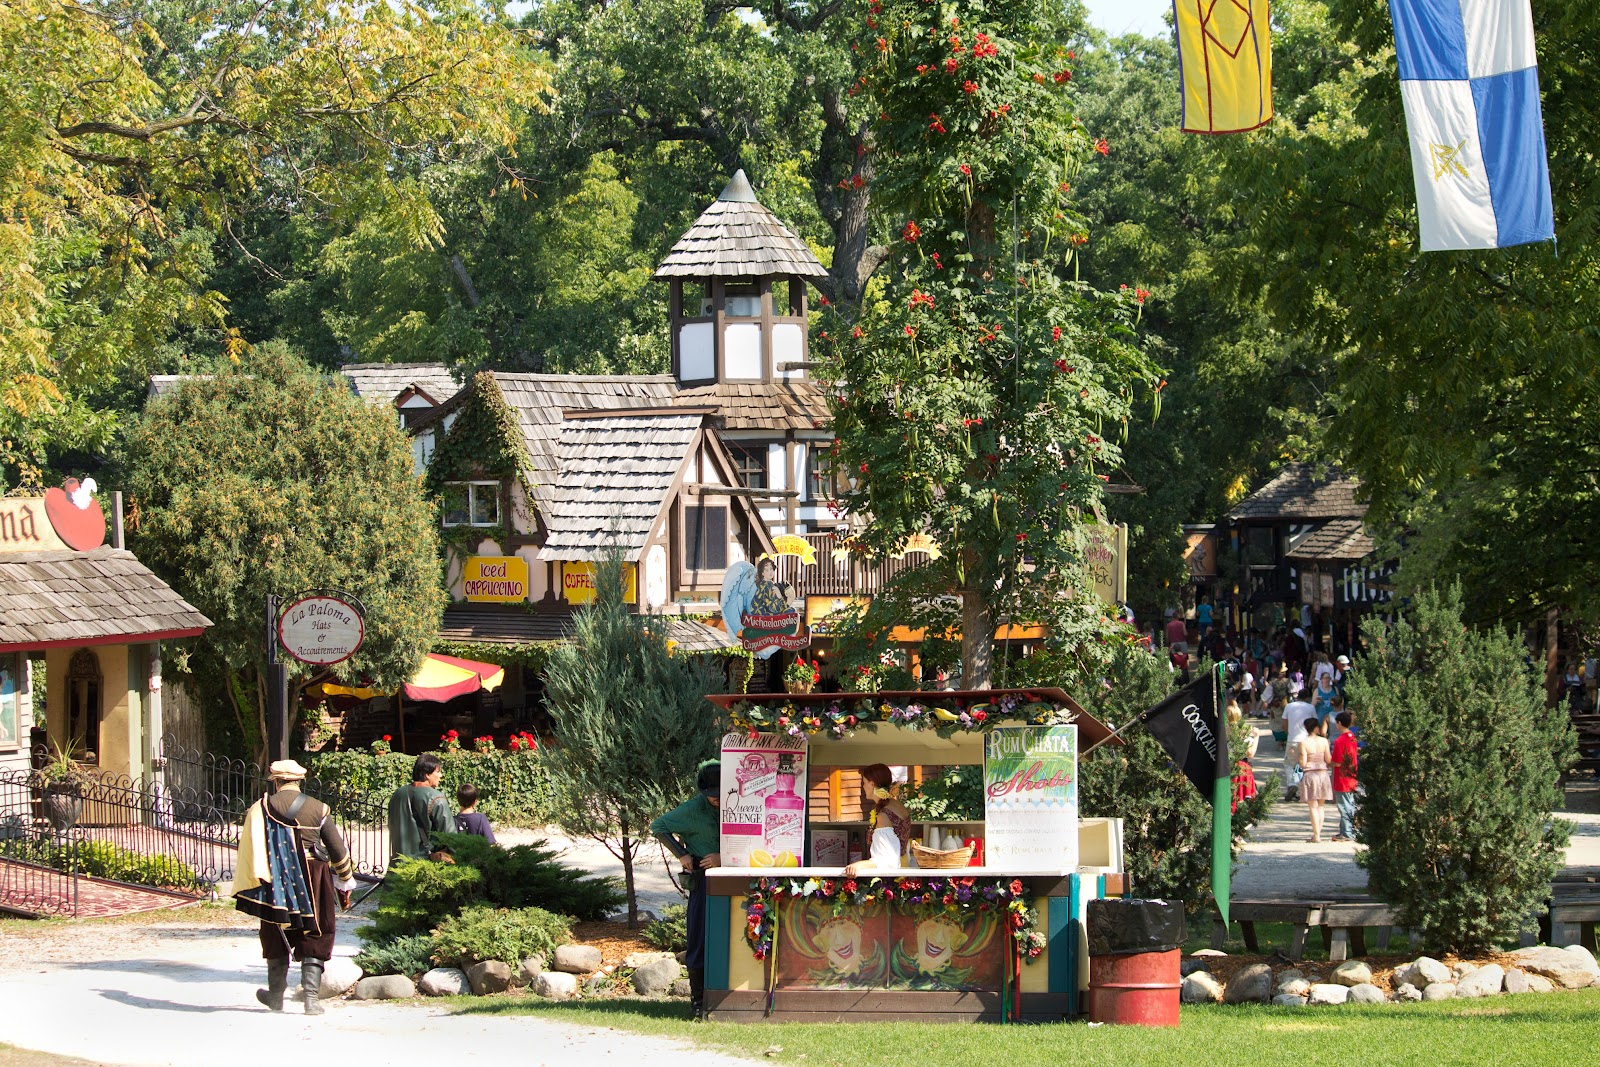 Renaissance Fairs: Midwestern City Girl: Huzzah! My Very First Trip To The